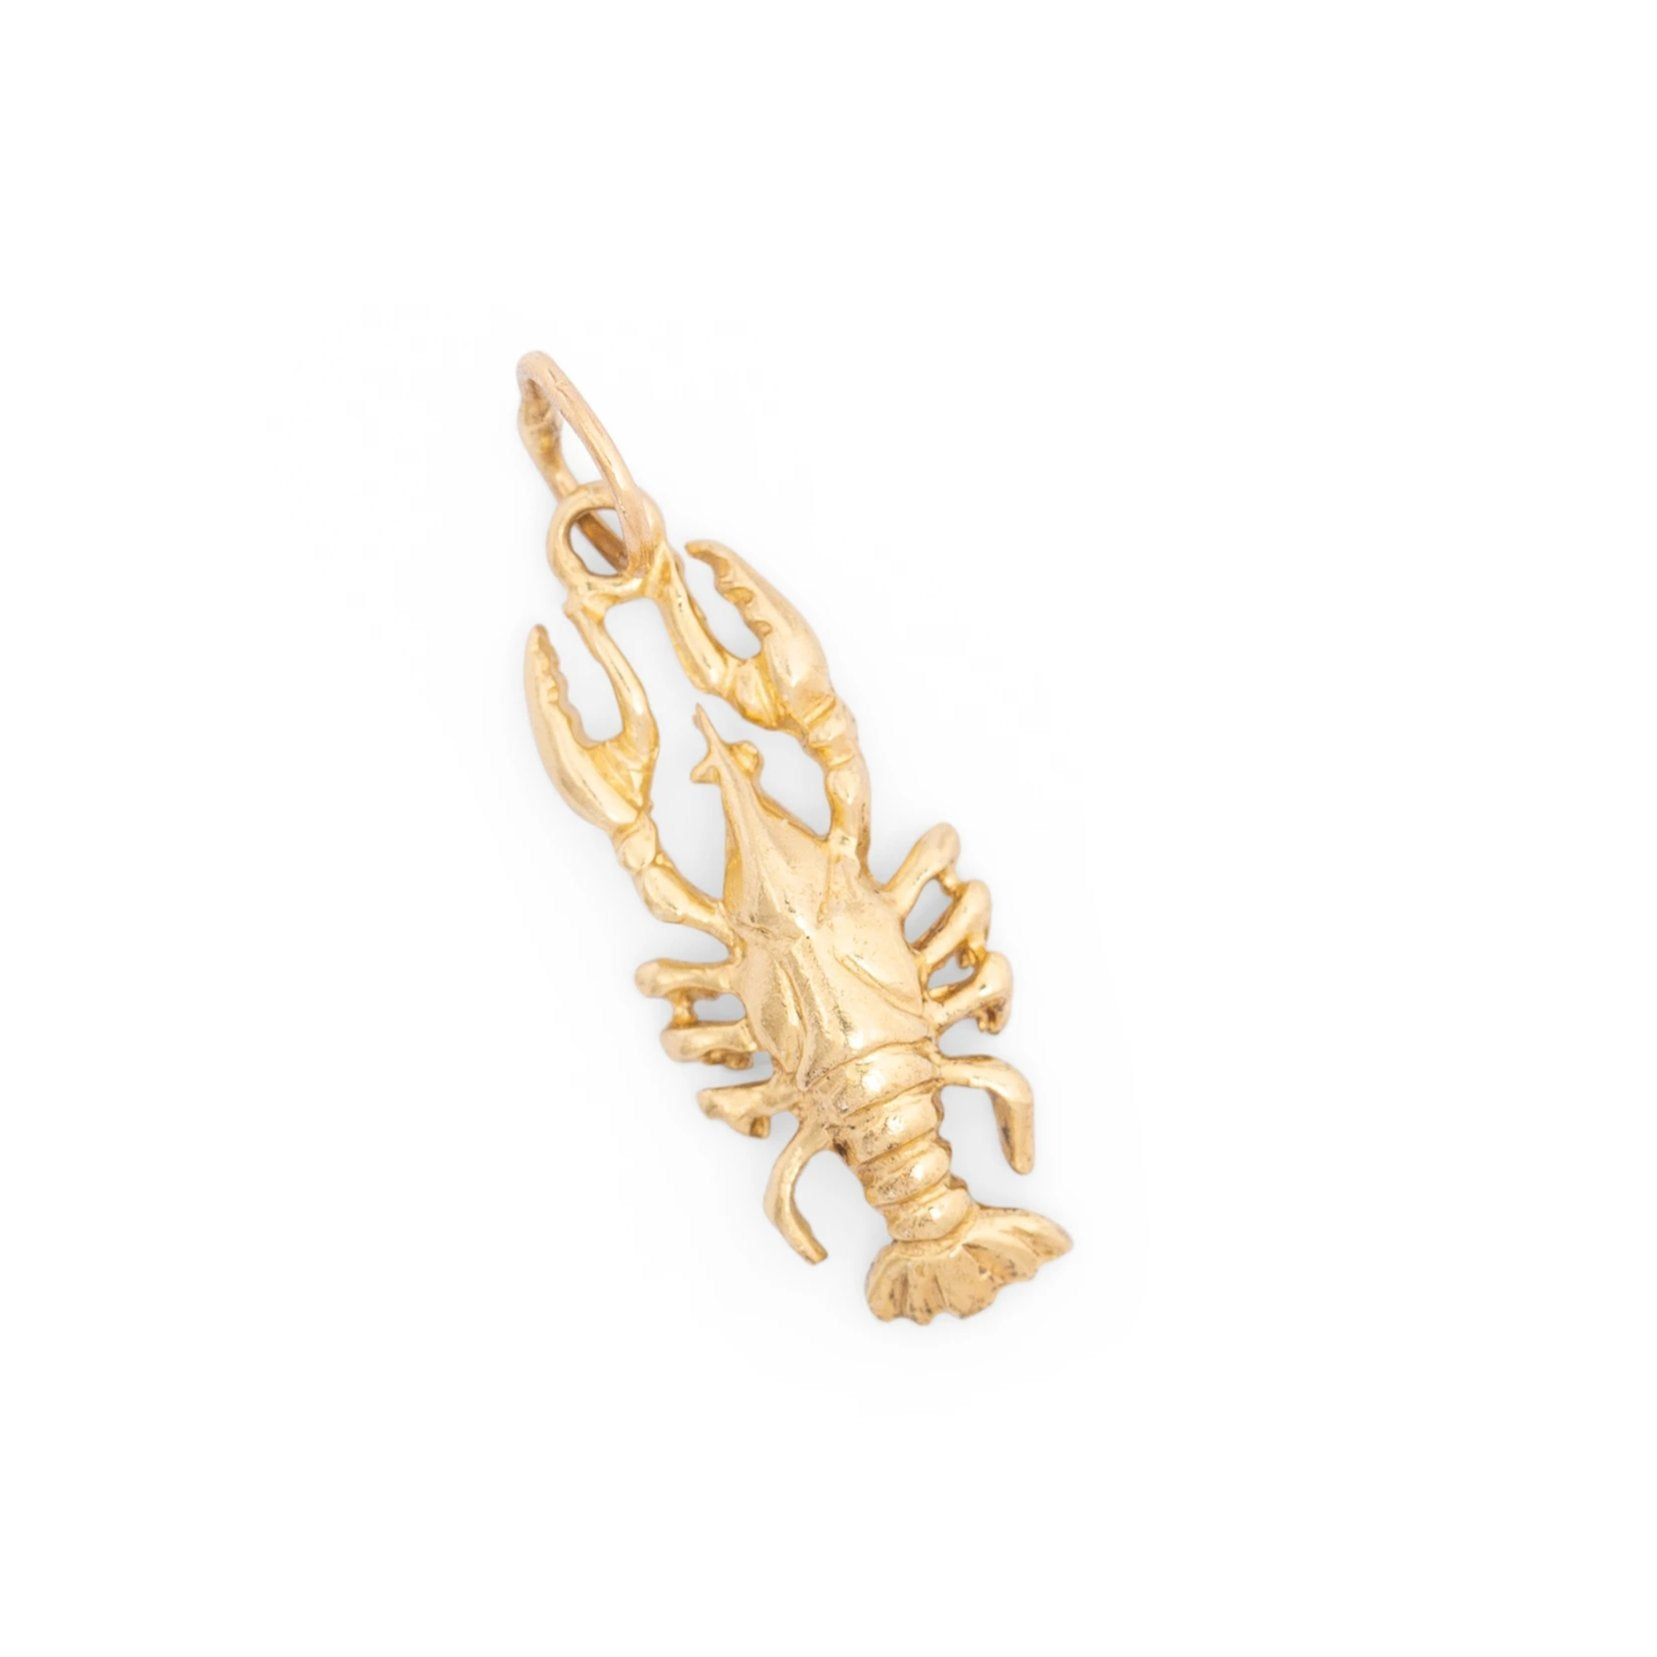 Crawfish 14K Gold Charm